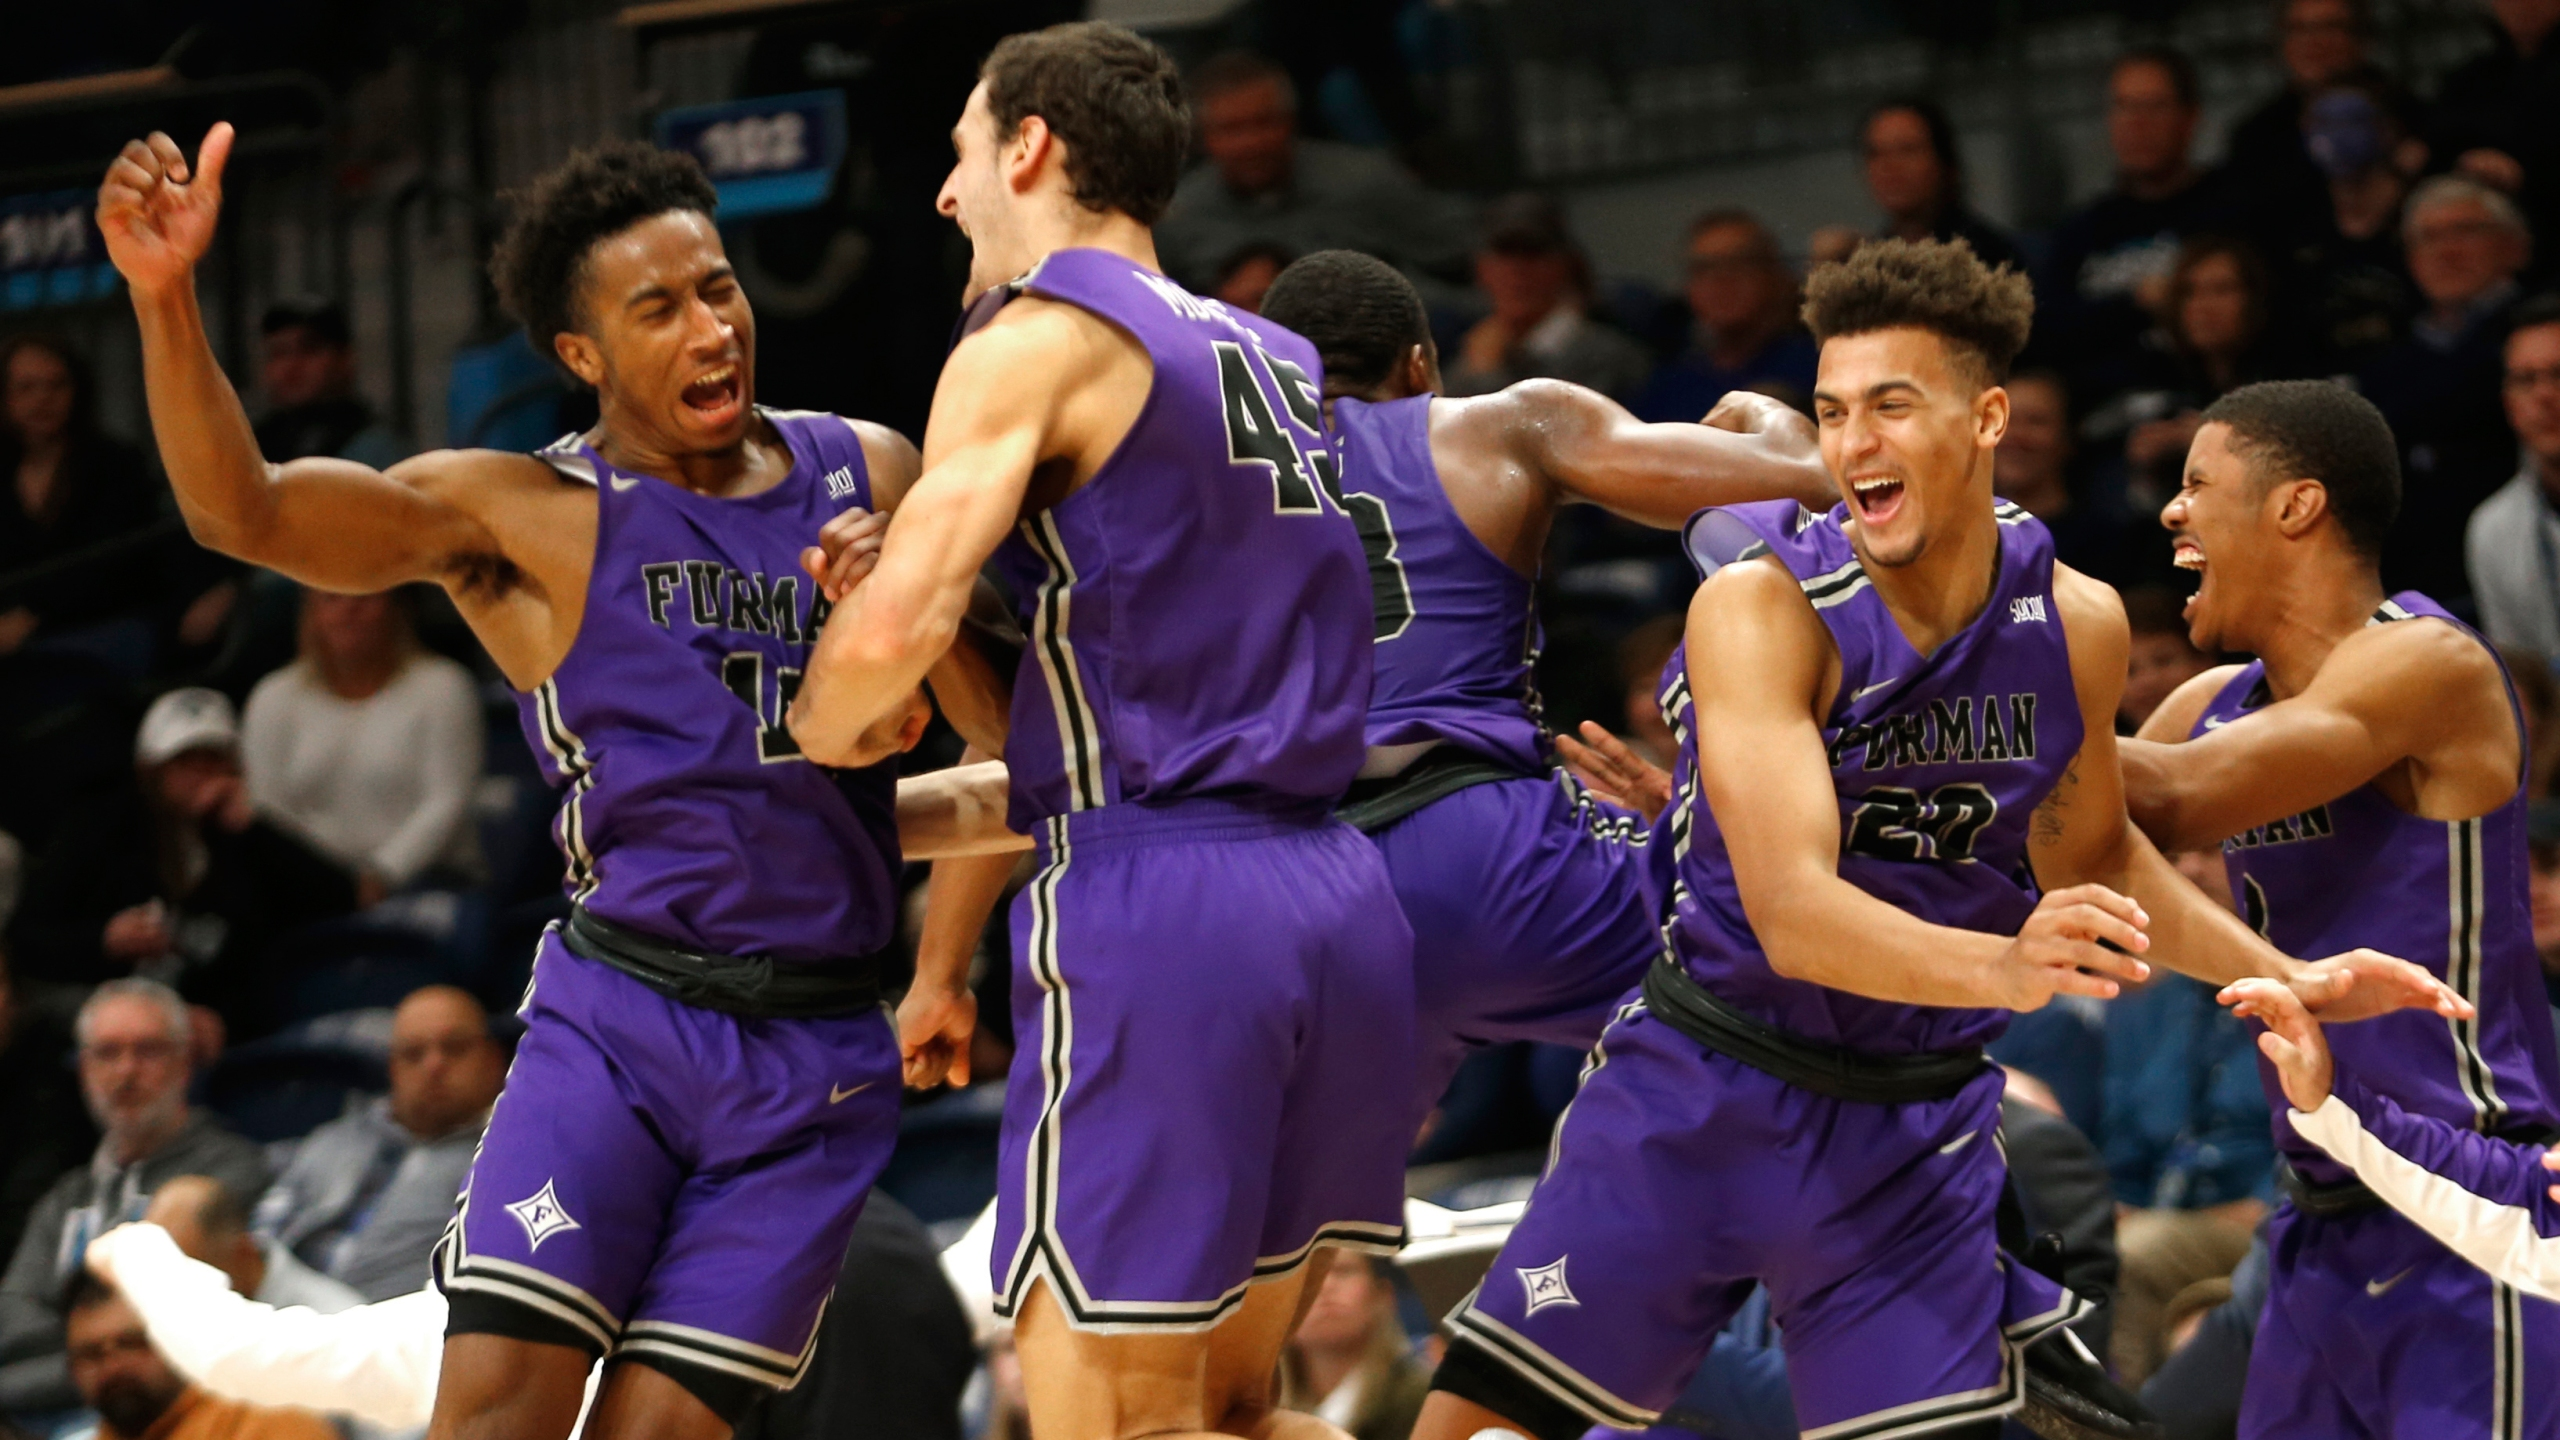 Furman Villanova Basketball_1542502394660